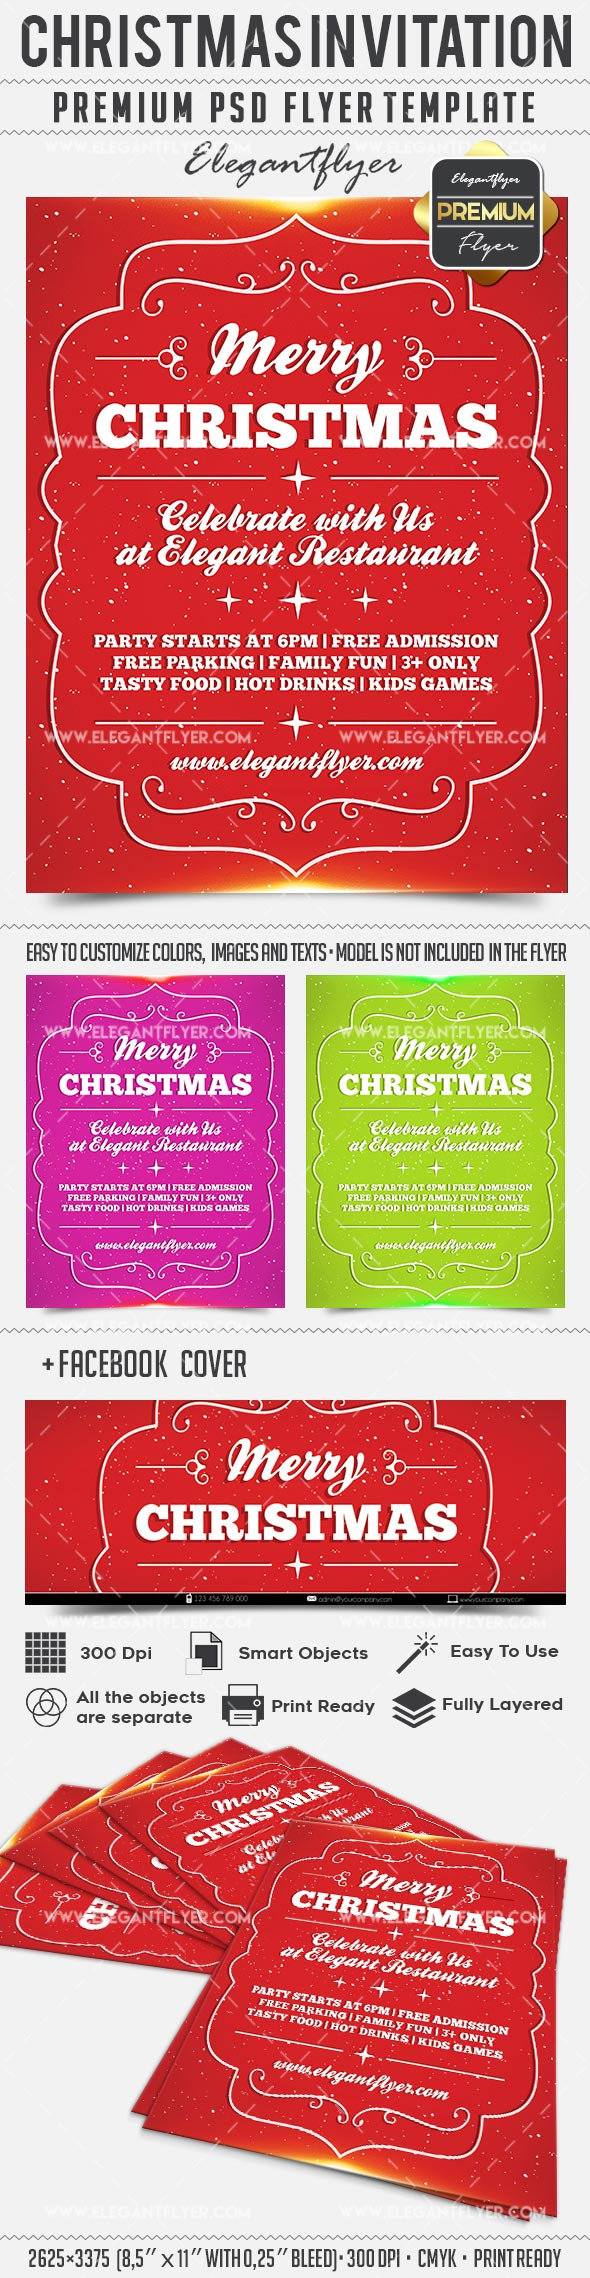 Christmas Invitation – Flyer PSD Template + Facebook Cover